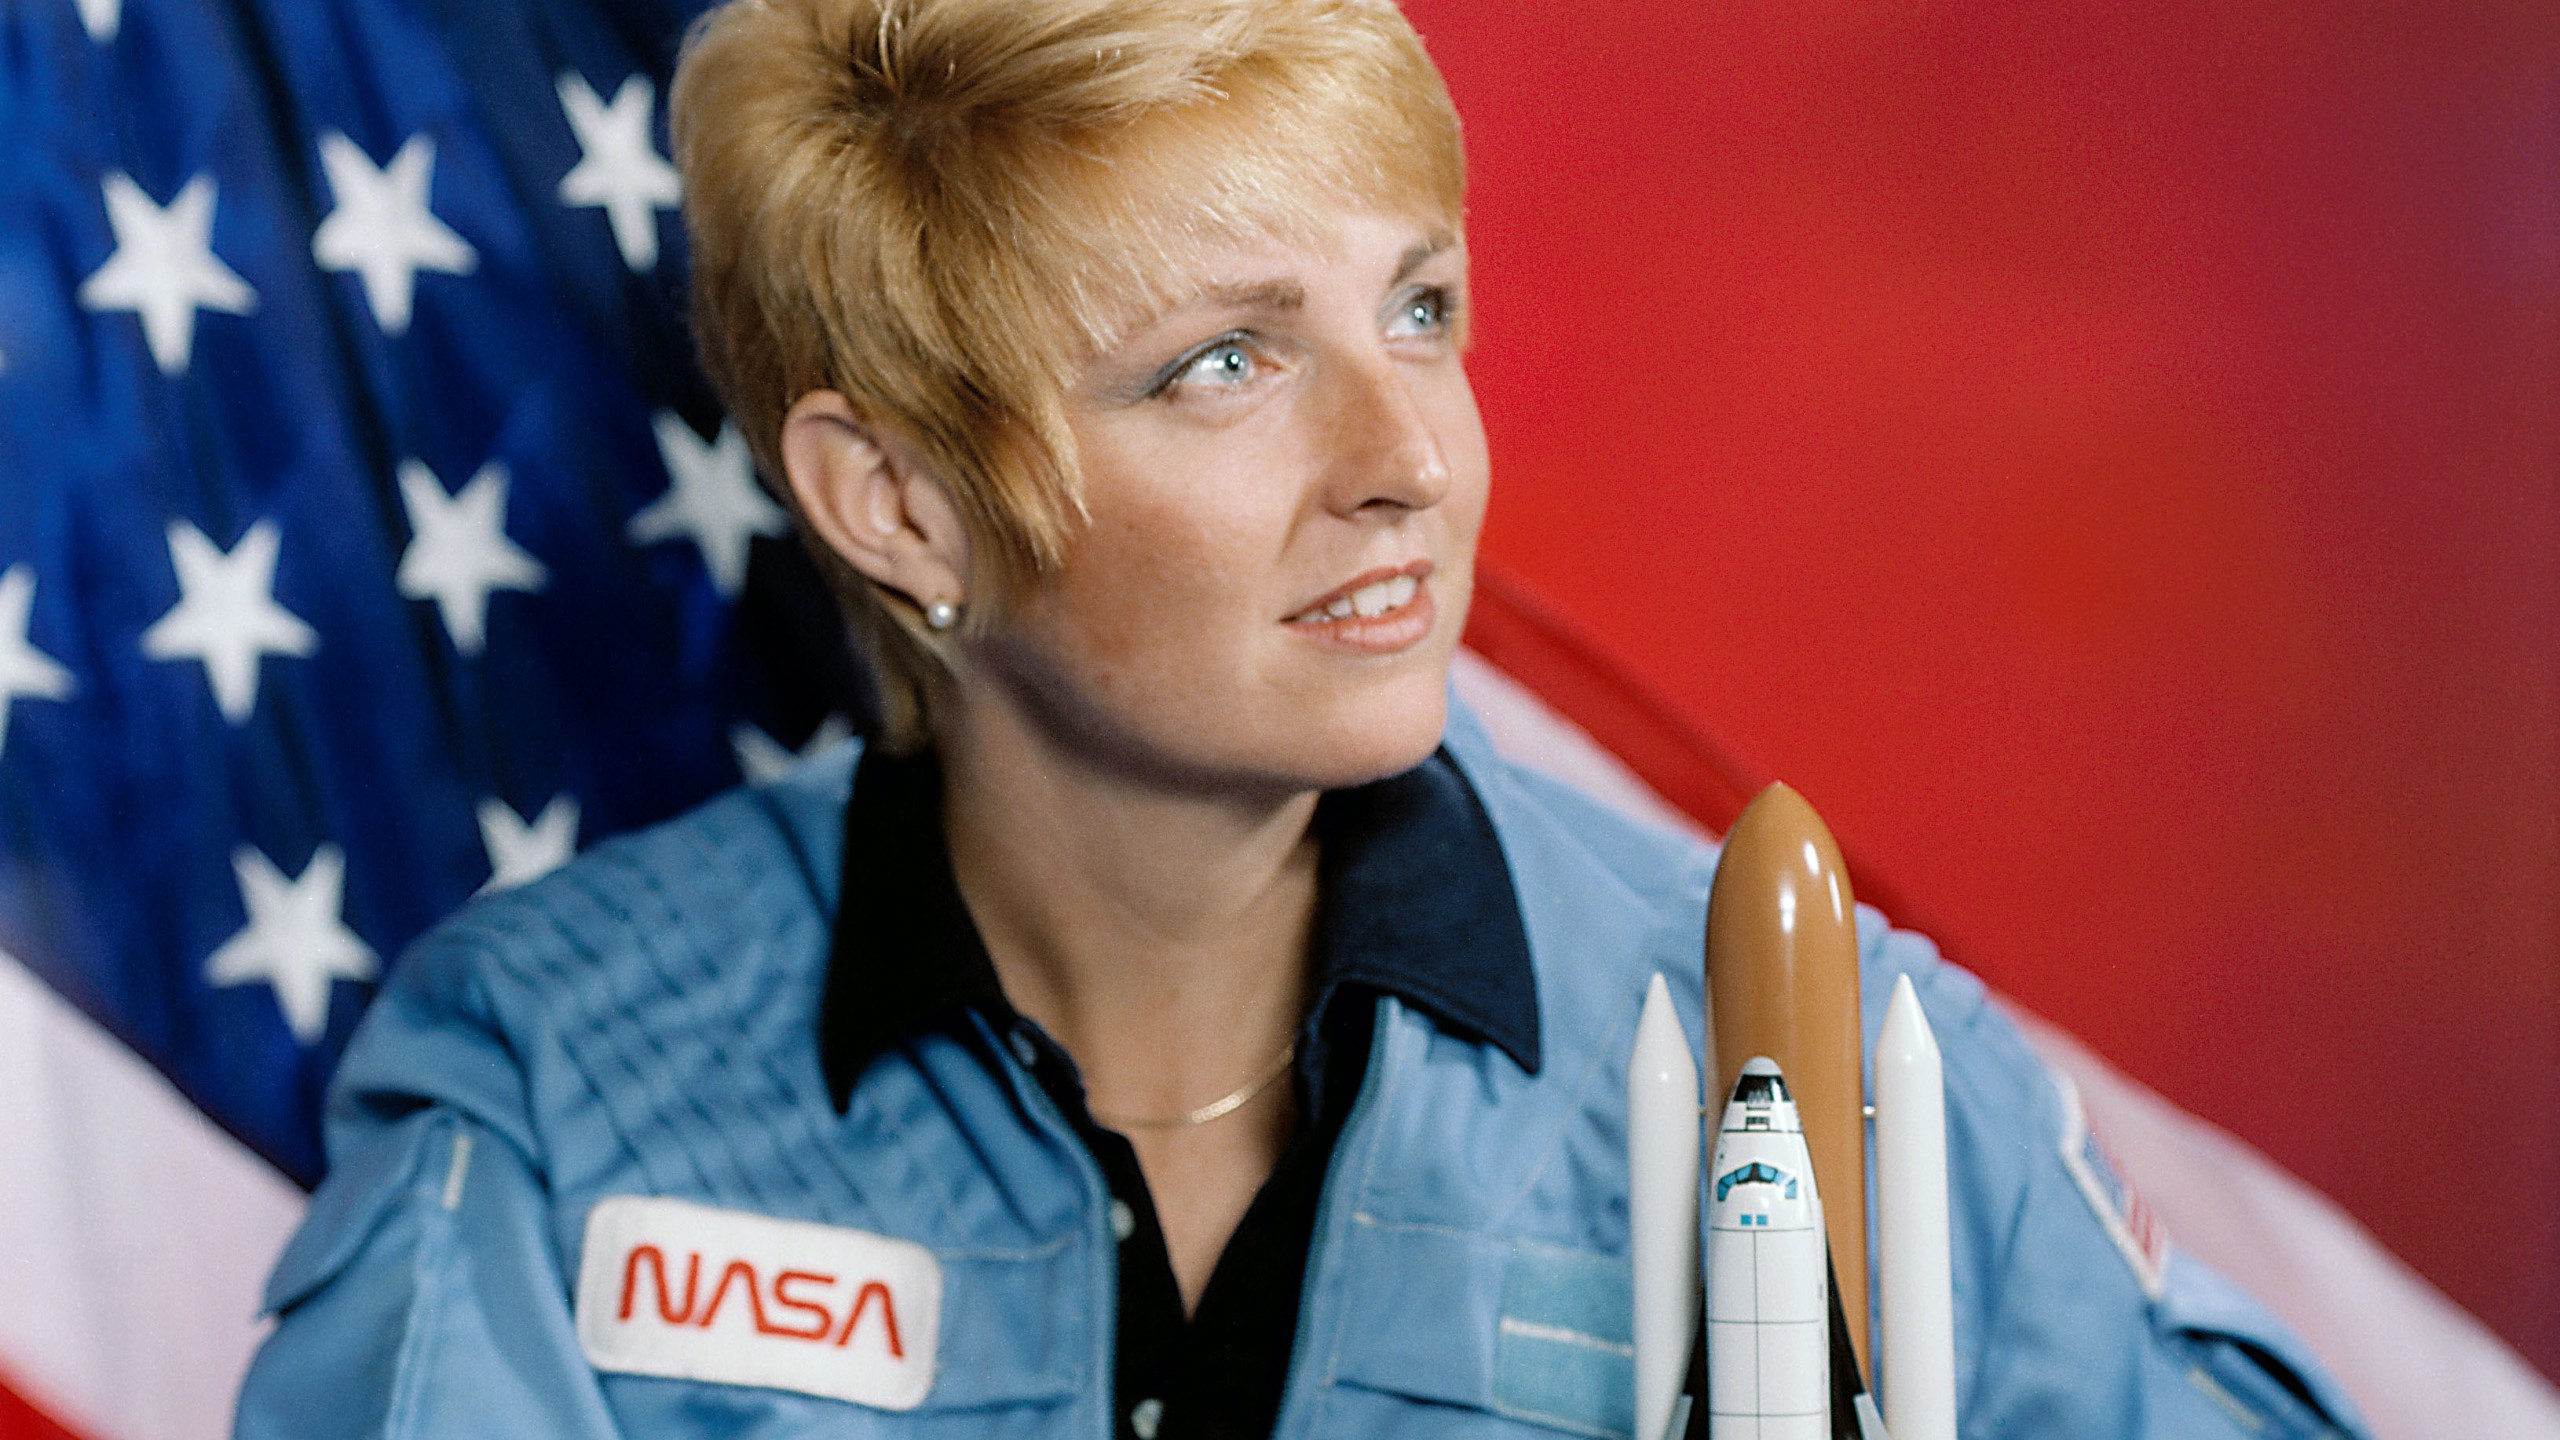 Millie Hughes-Fulford, a trailblazing astronaut and scientist who became the first female payload specialist to fly in space for NASA, died following a yearslong battle with cancer, her family said. She was 75. (NASA)